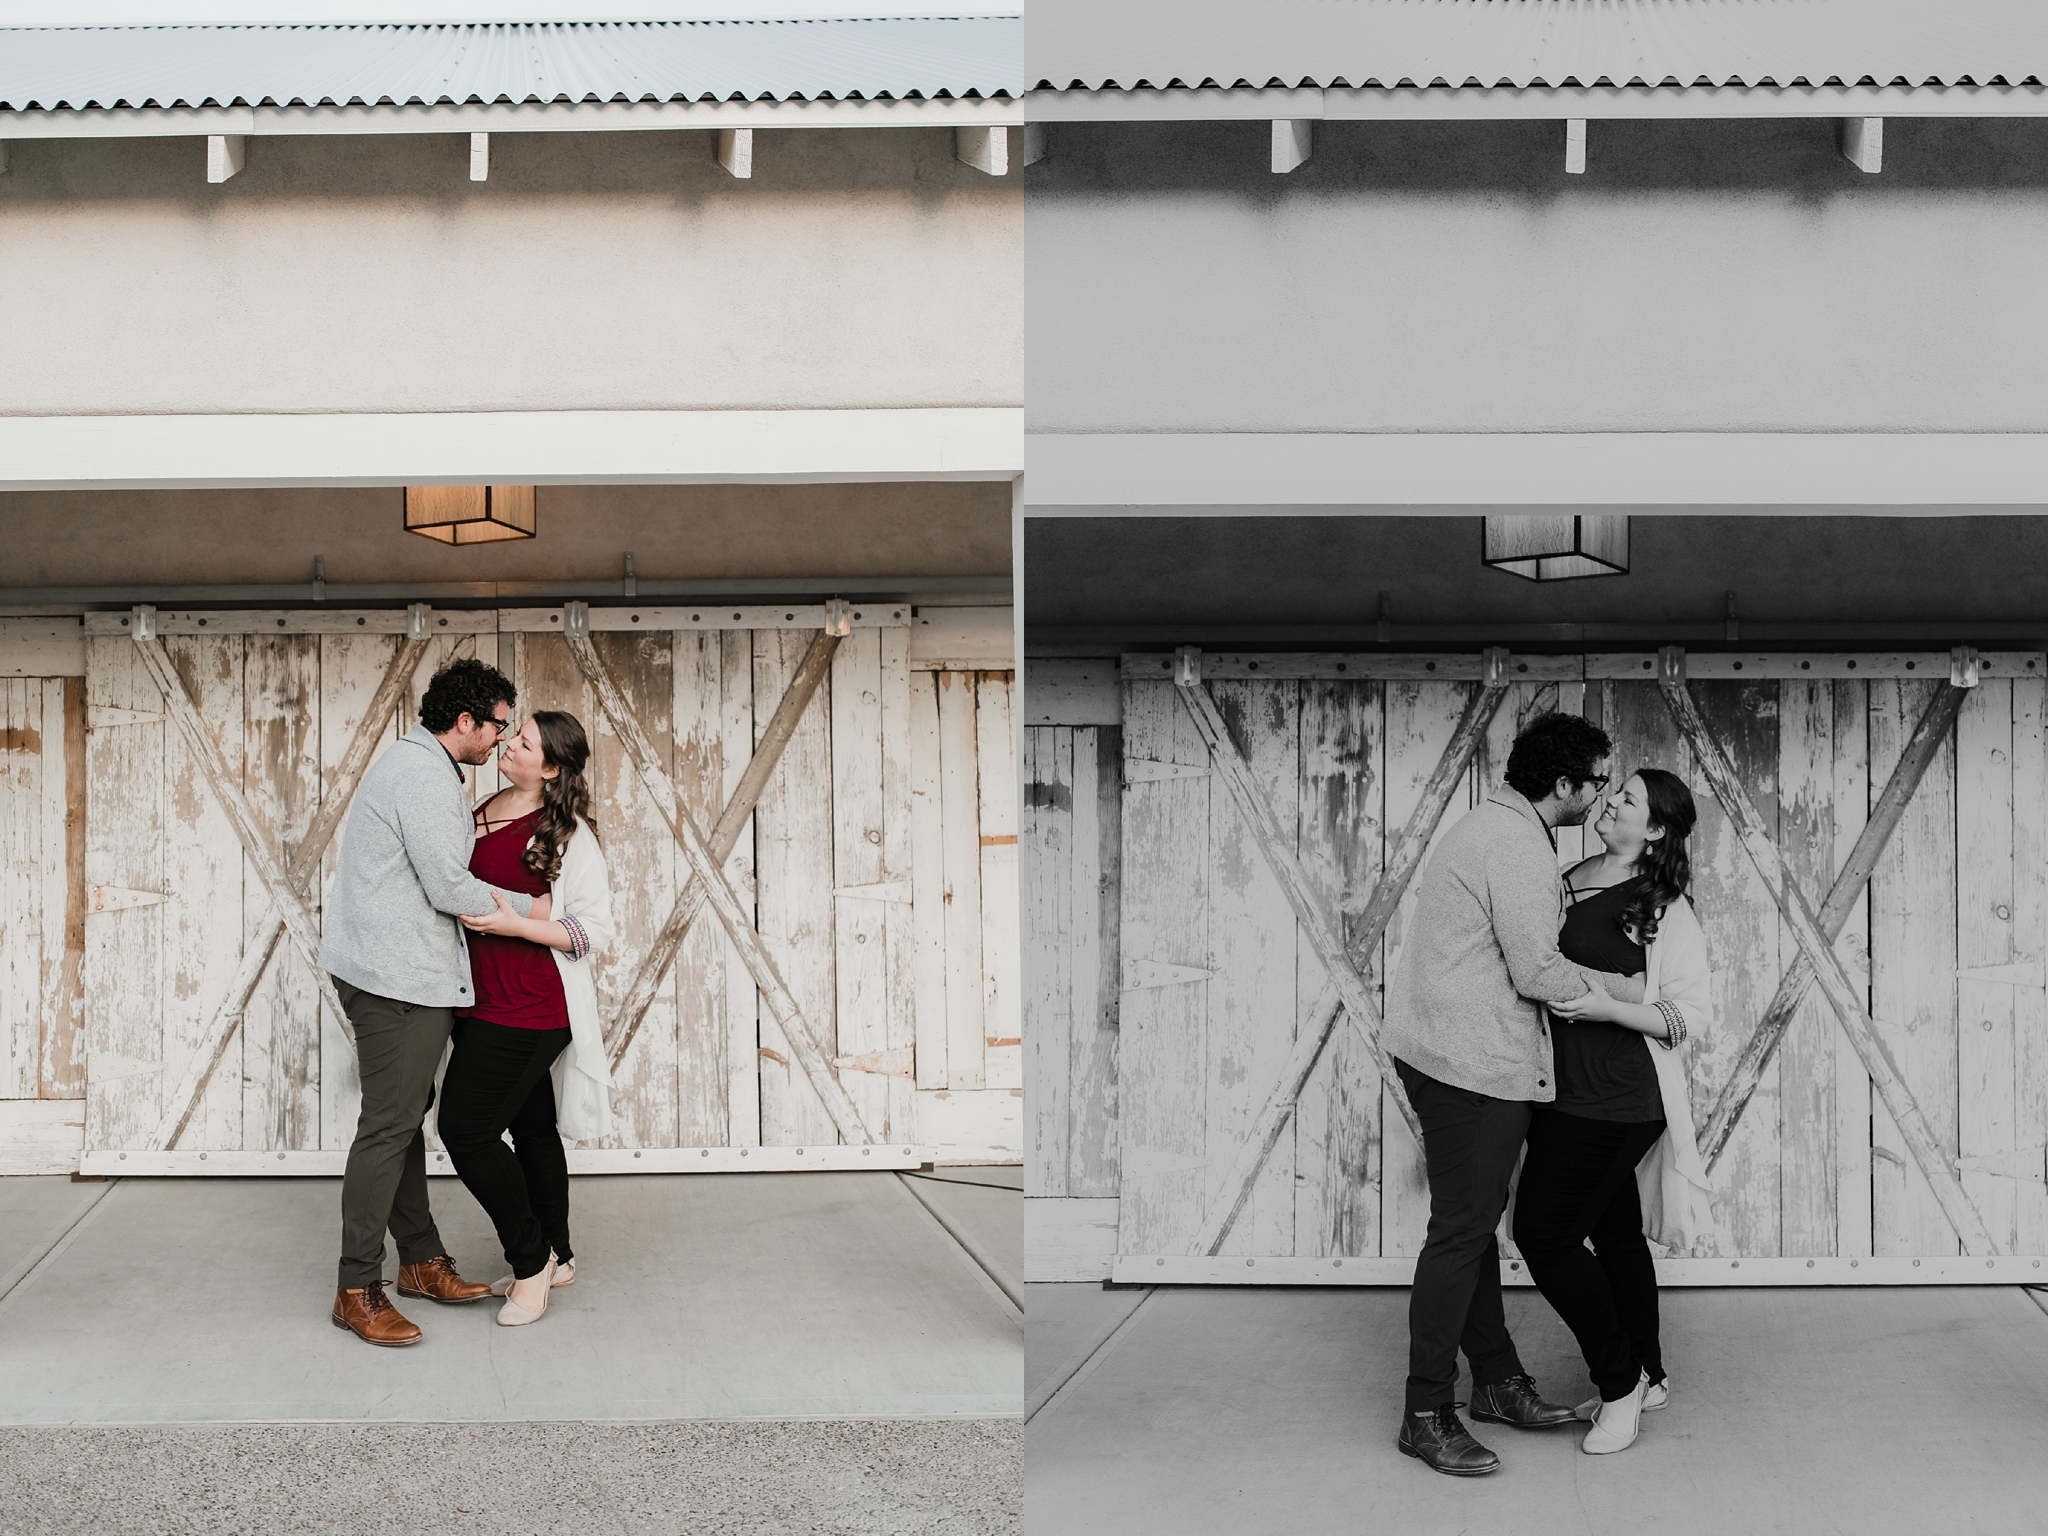 Alicia+lucia+photography+-+albuquerque+wedding+photographer+-+santa+fe+wedding+photography+-+new+mexico+wedding+photographer+-+new+mexico+engagement+-+los+poblanos+engagement+-+spring+engagement_0009.jpg